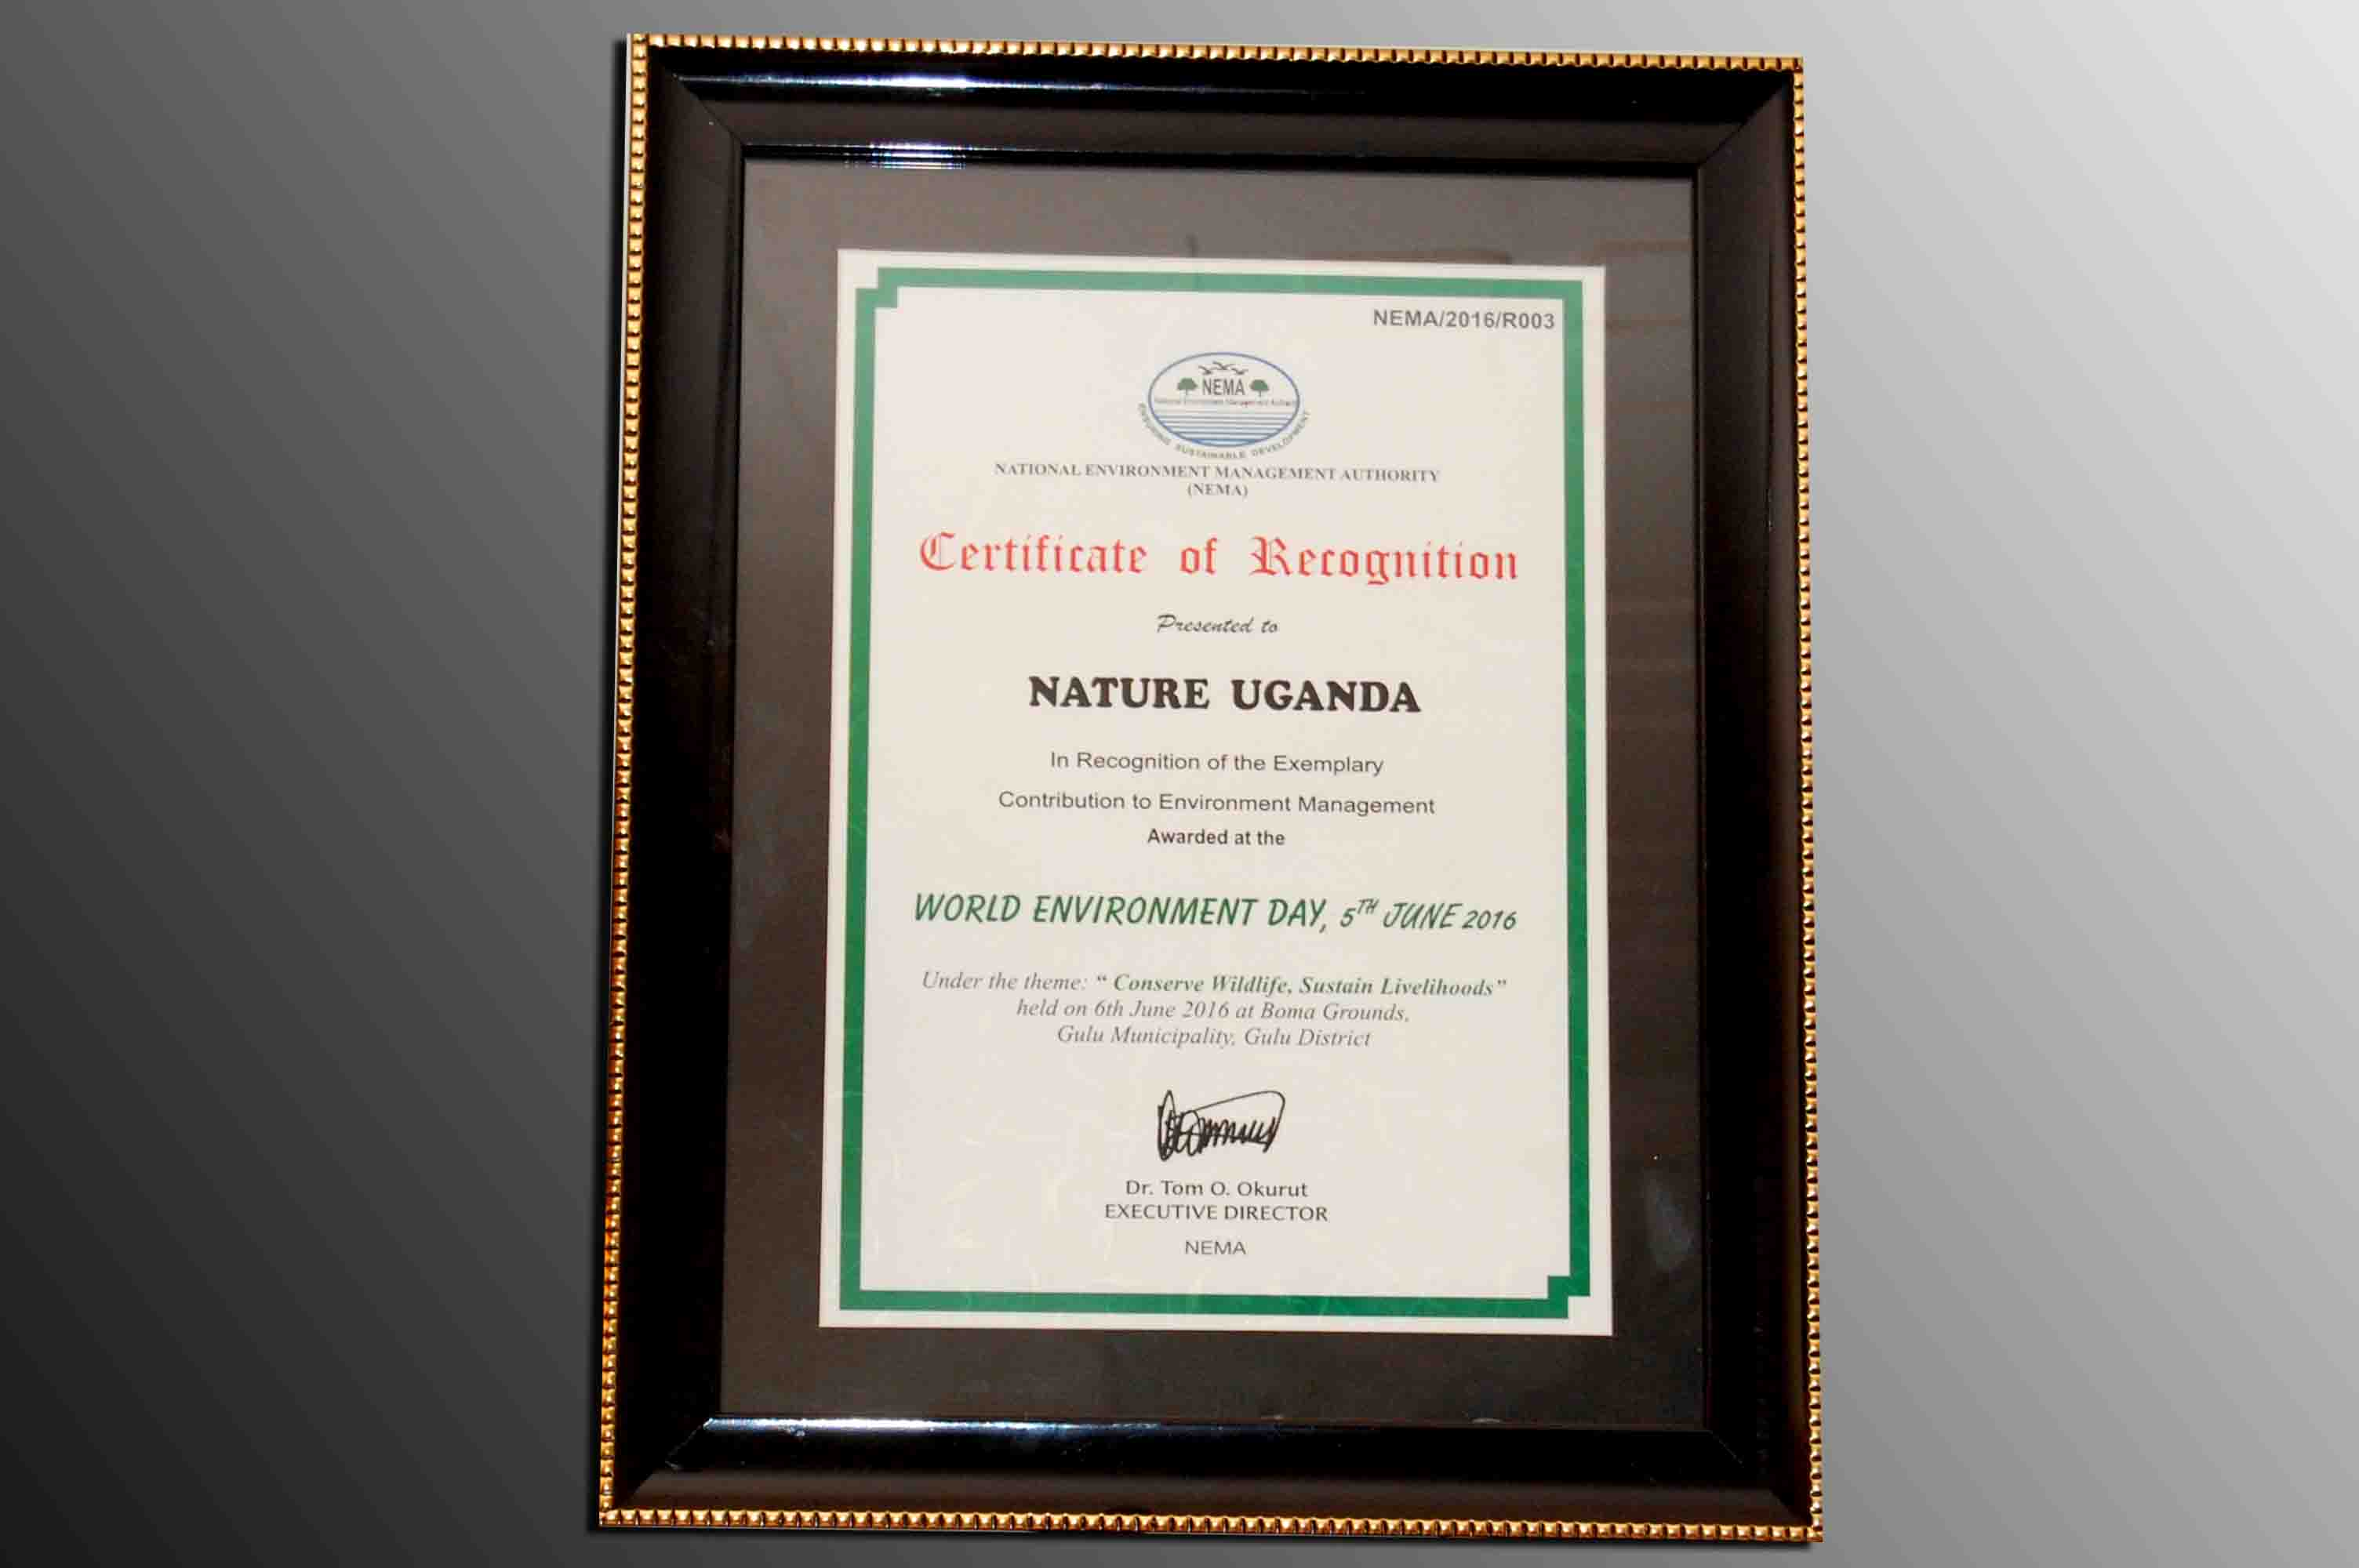 Certificate of Recognition - World Environment Day